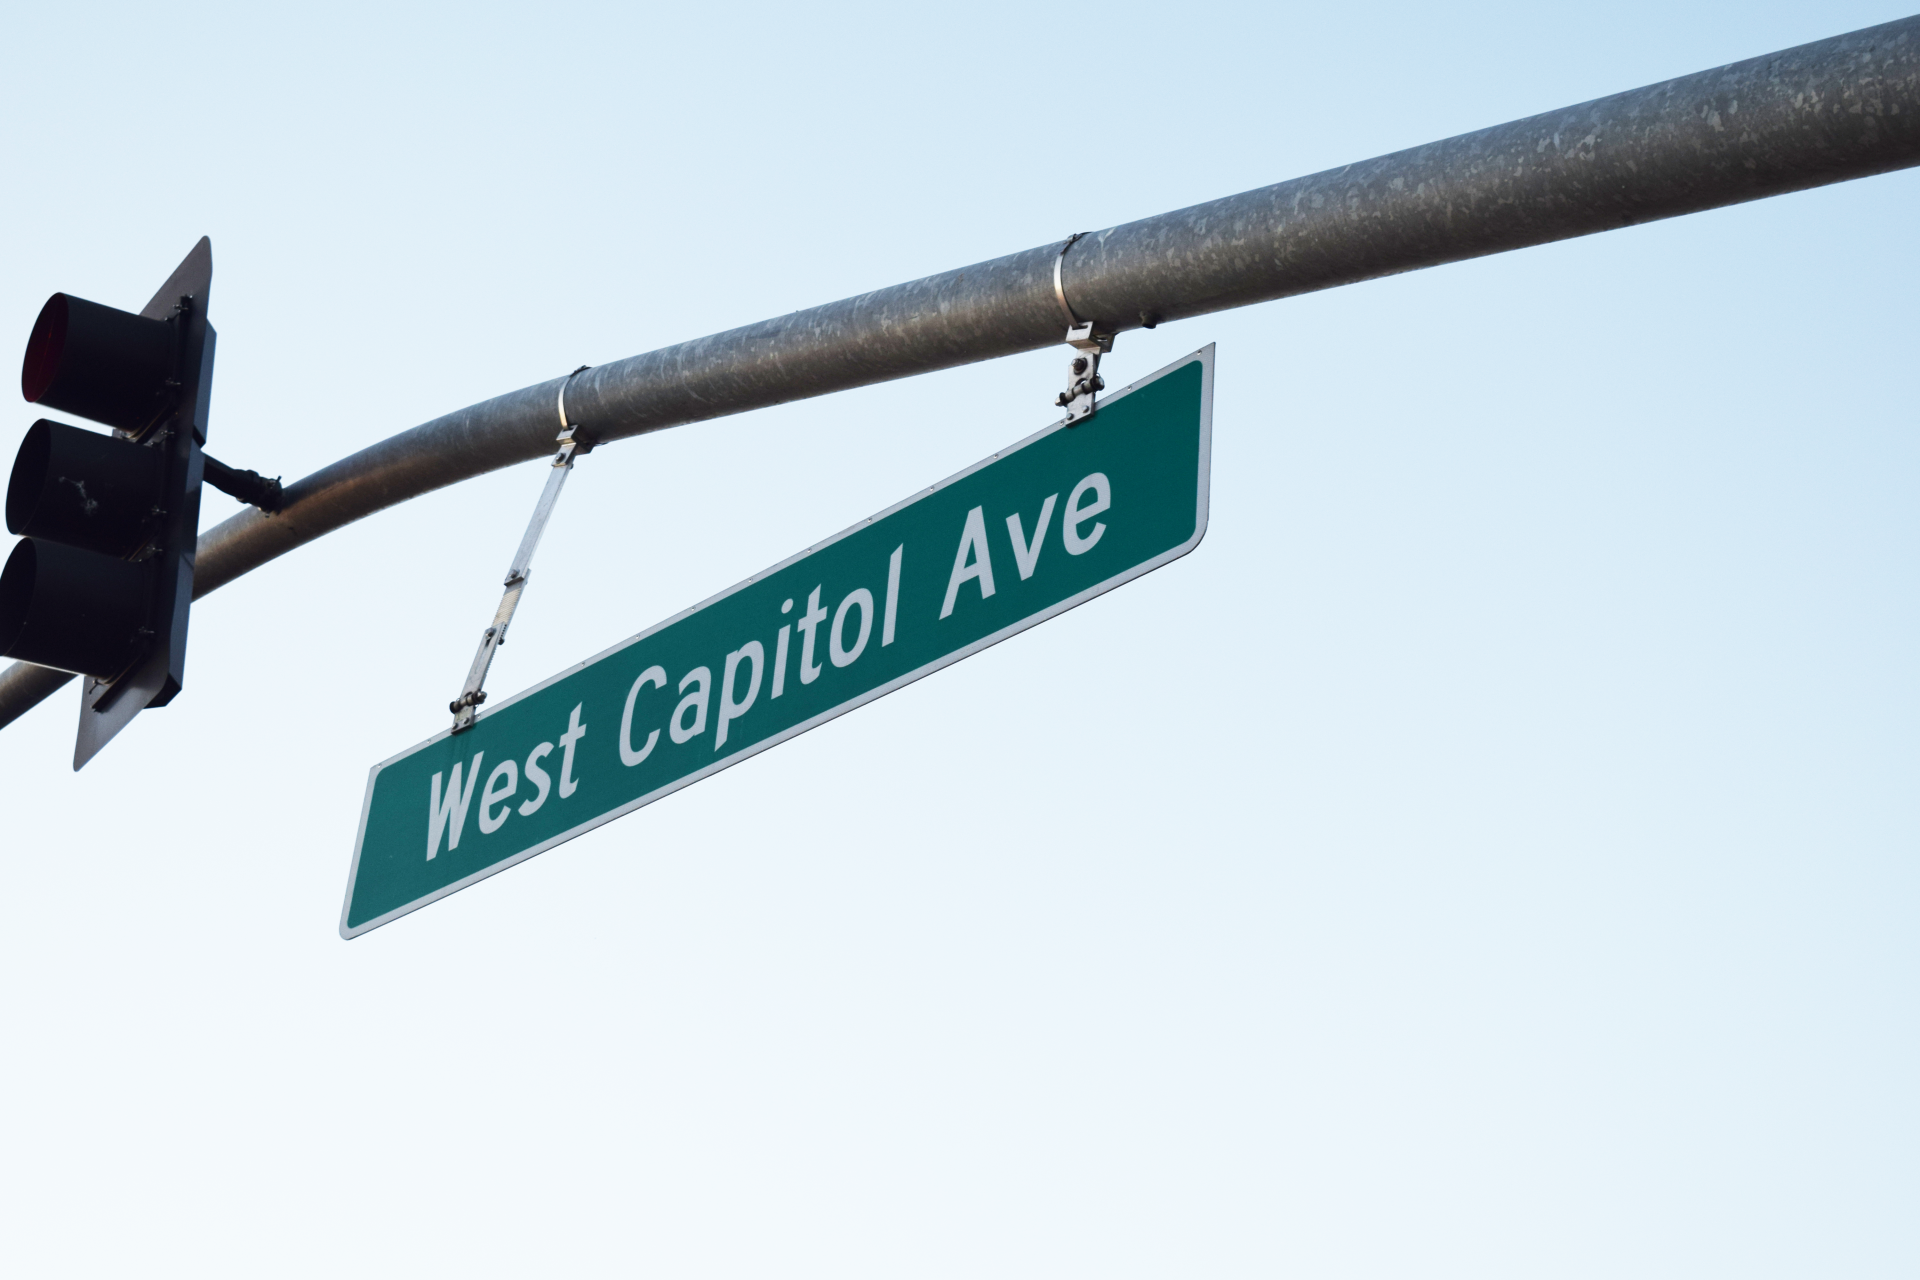 West Cap street sign